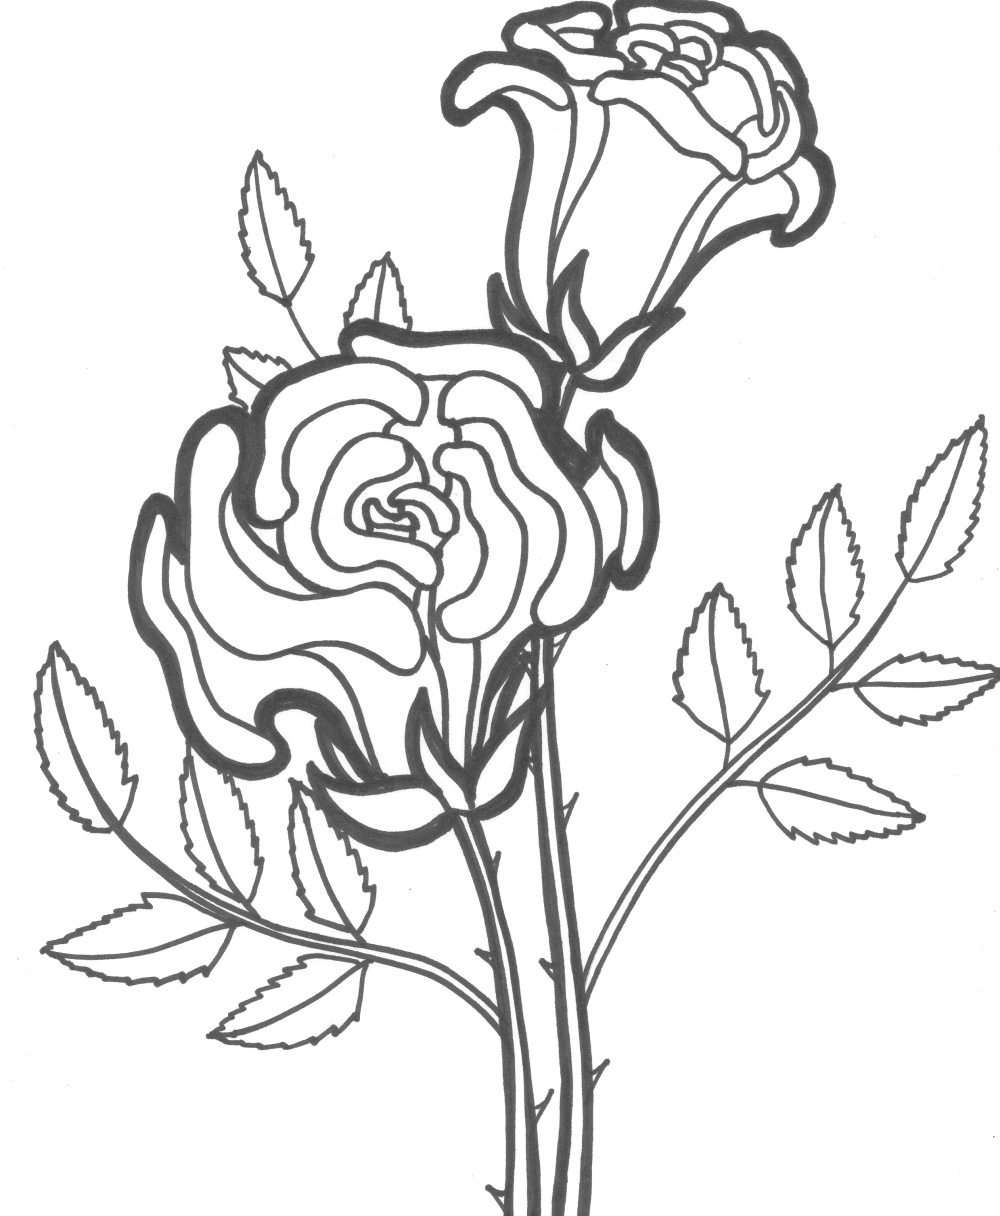 Dead Flower Drawing at GetDrawings.com | Free for personal use Dead ...